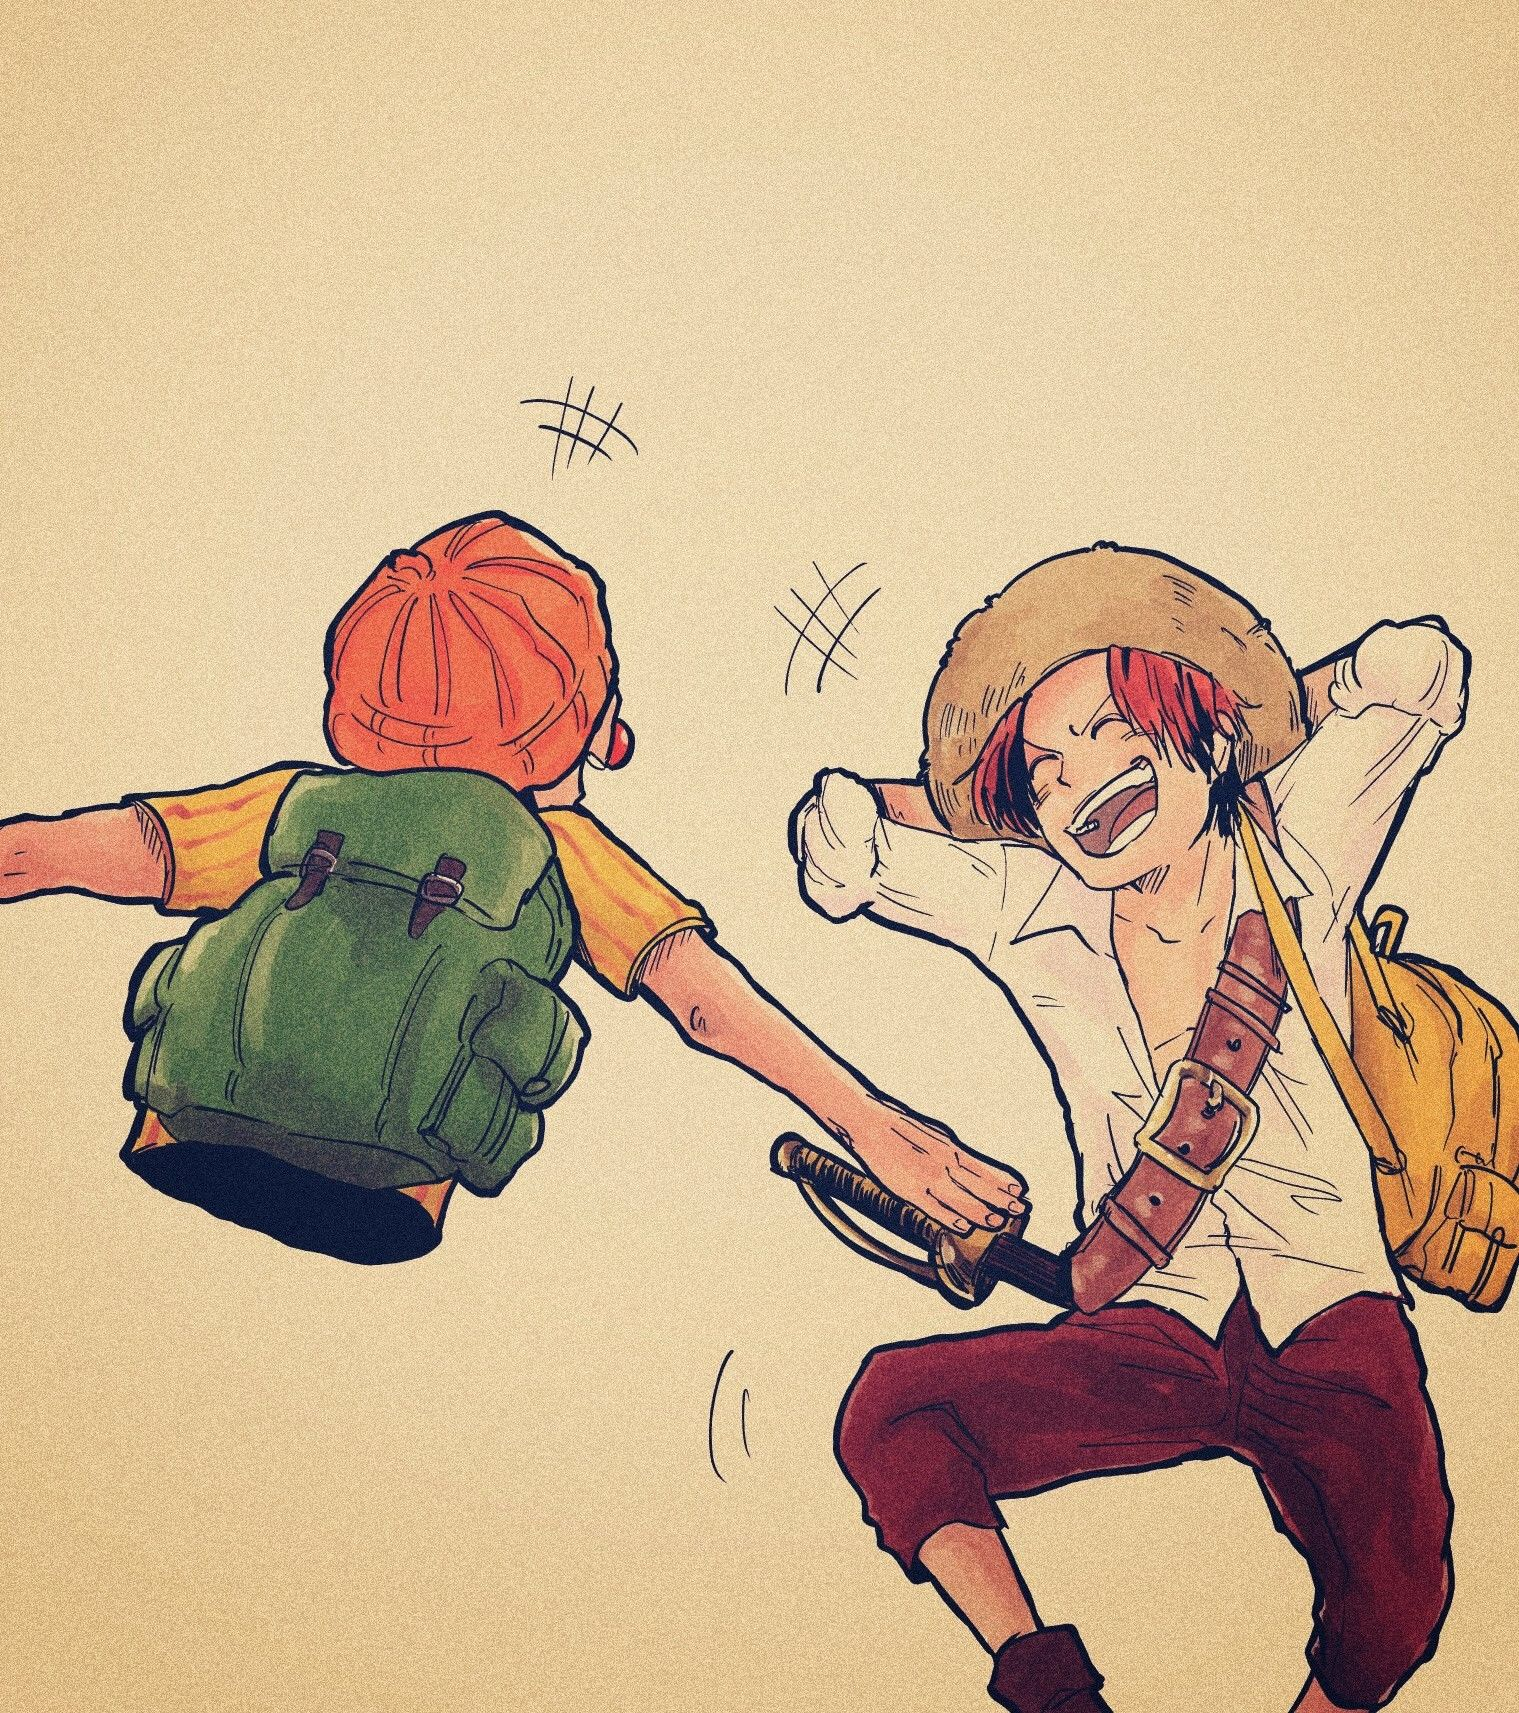 Buggy And Shanks Art By 5512koko One Piece Anime One Piece Drawing One Piece Ace